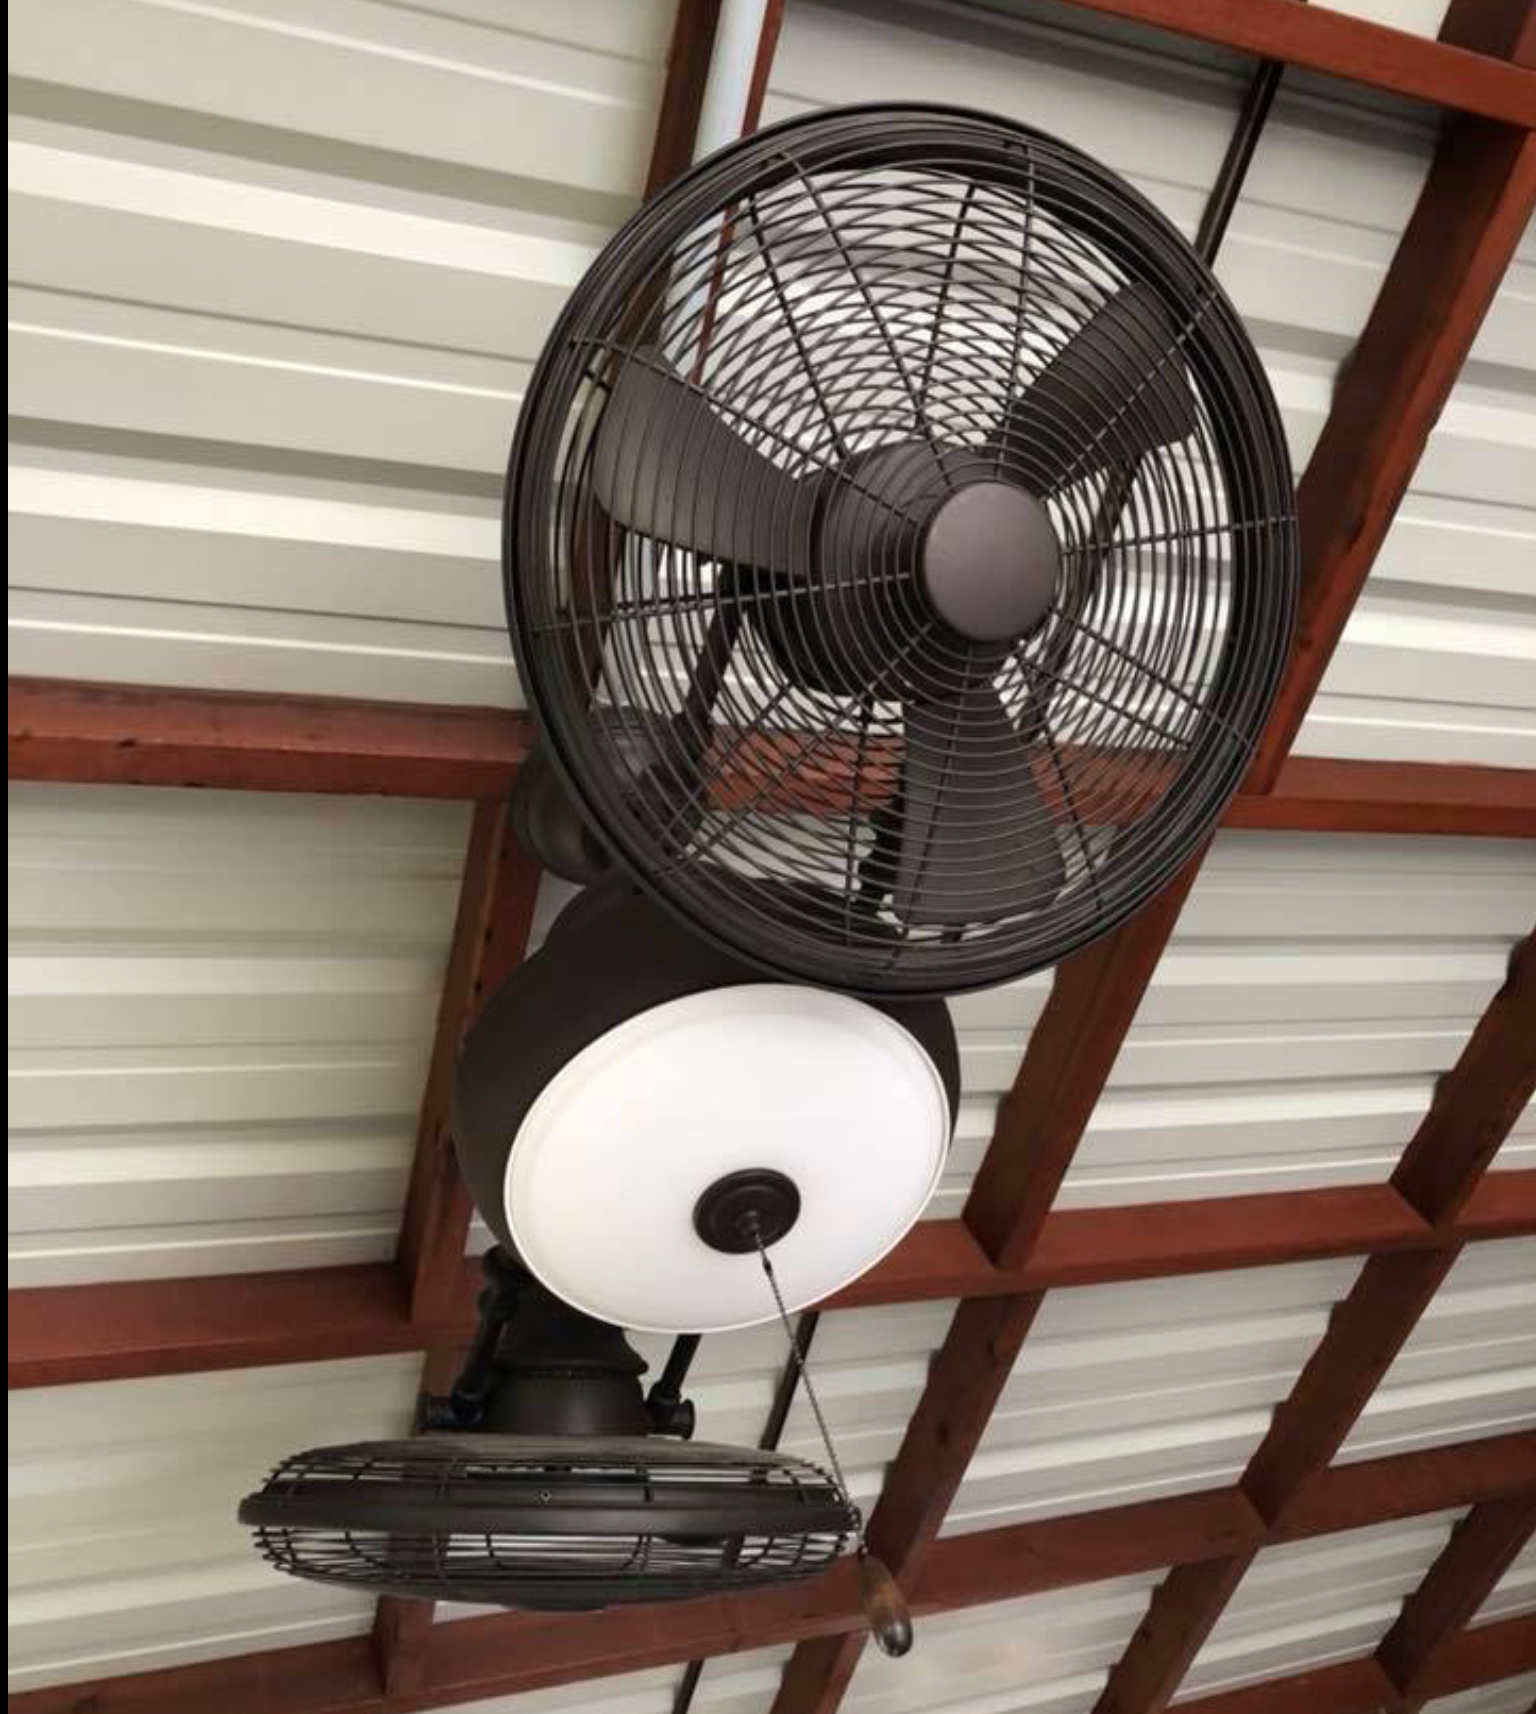 The all in one fan